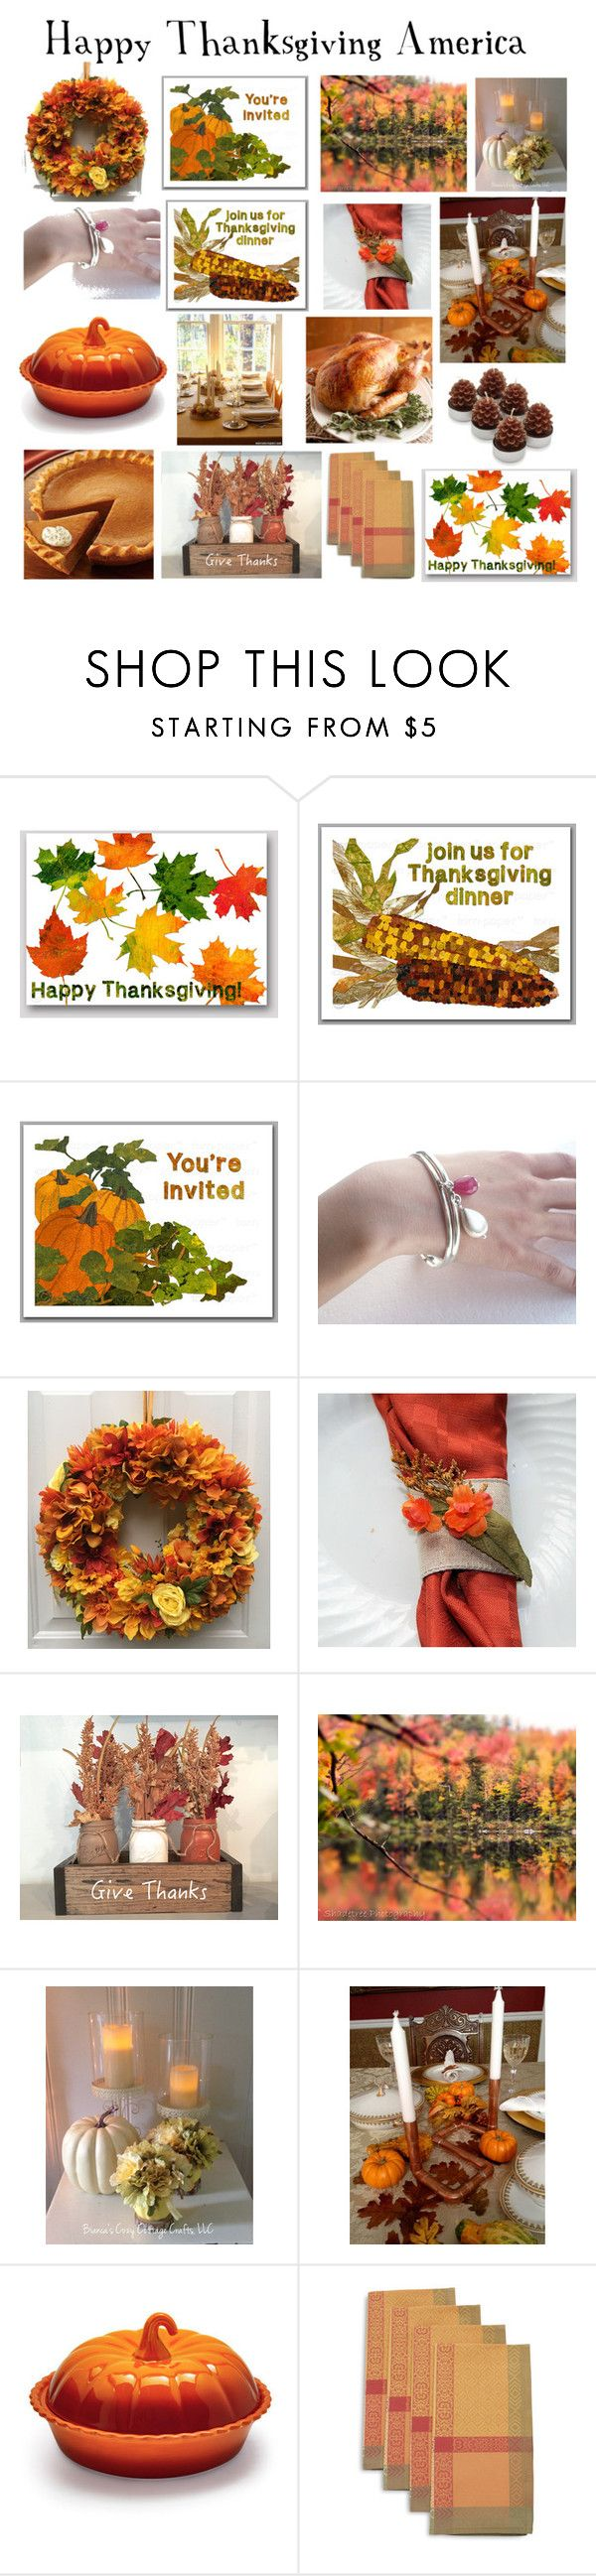 """Happy Thanksgiving America"" by belladonnasjoy ❤ liked on Polyvore featuring interior, interiors, interior design, home, home decor, interior decorating, Hostess, Sur La Table, america and happy"